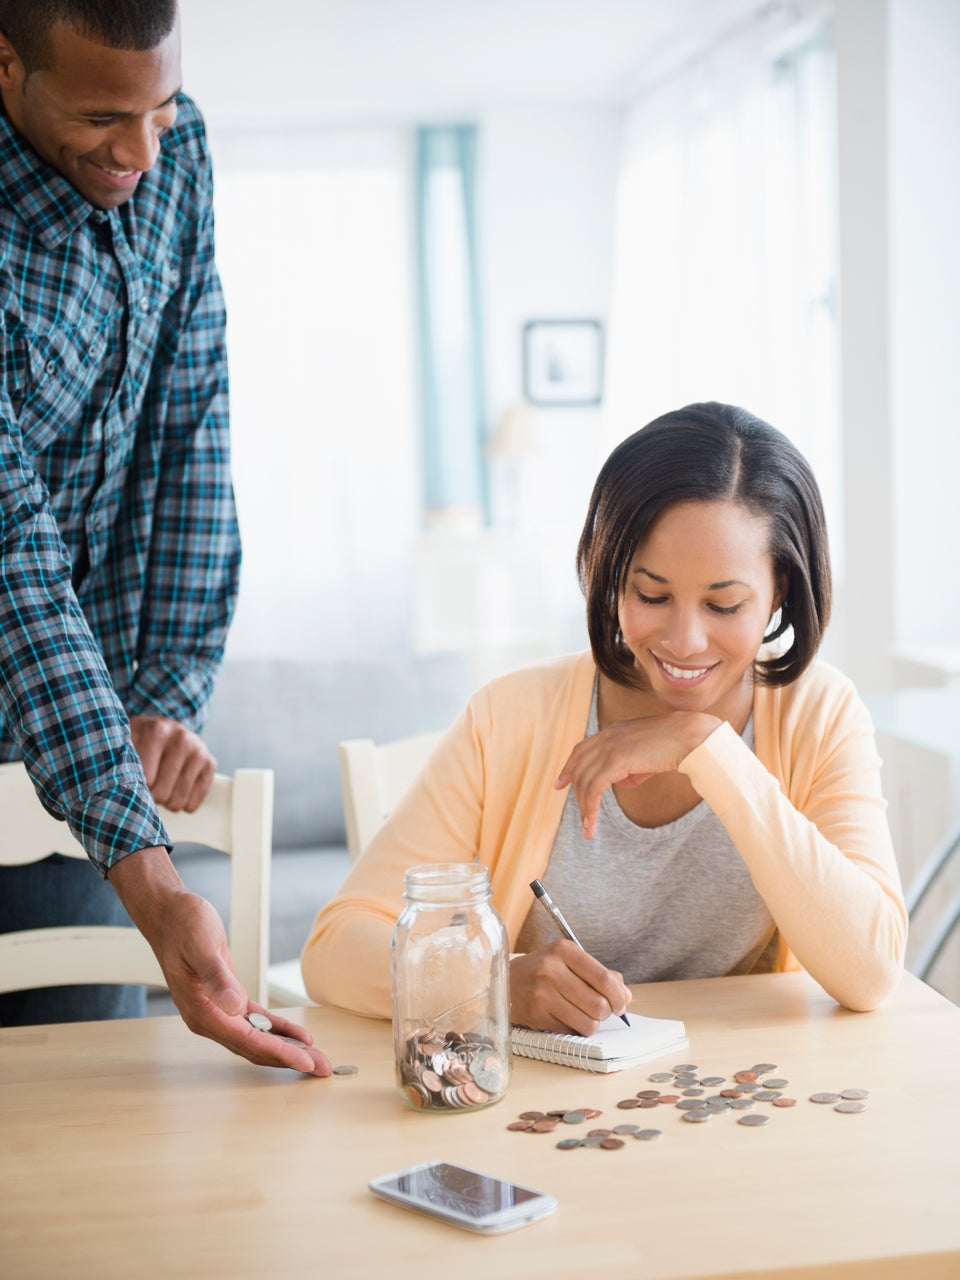 Guess How Much Couples Are Okay With Secretly Spending Before They Tell Their Partner?